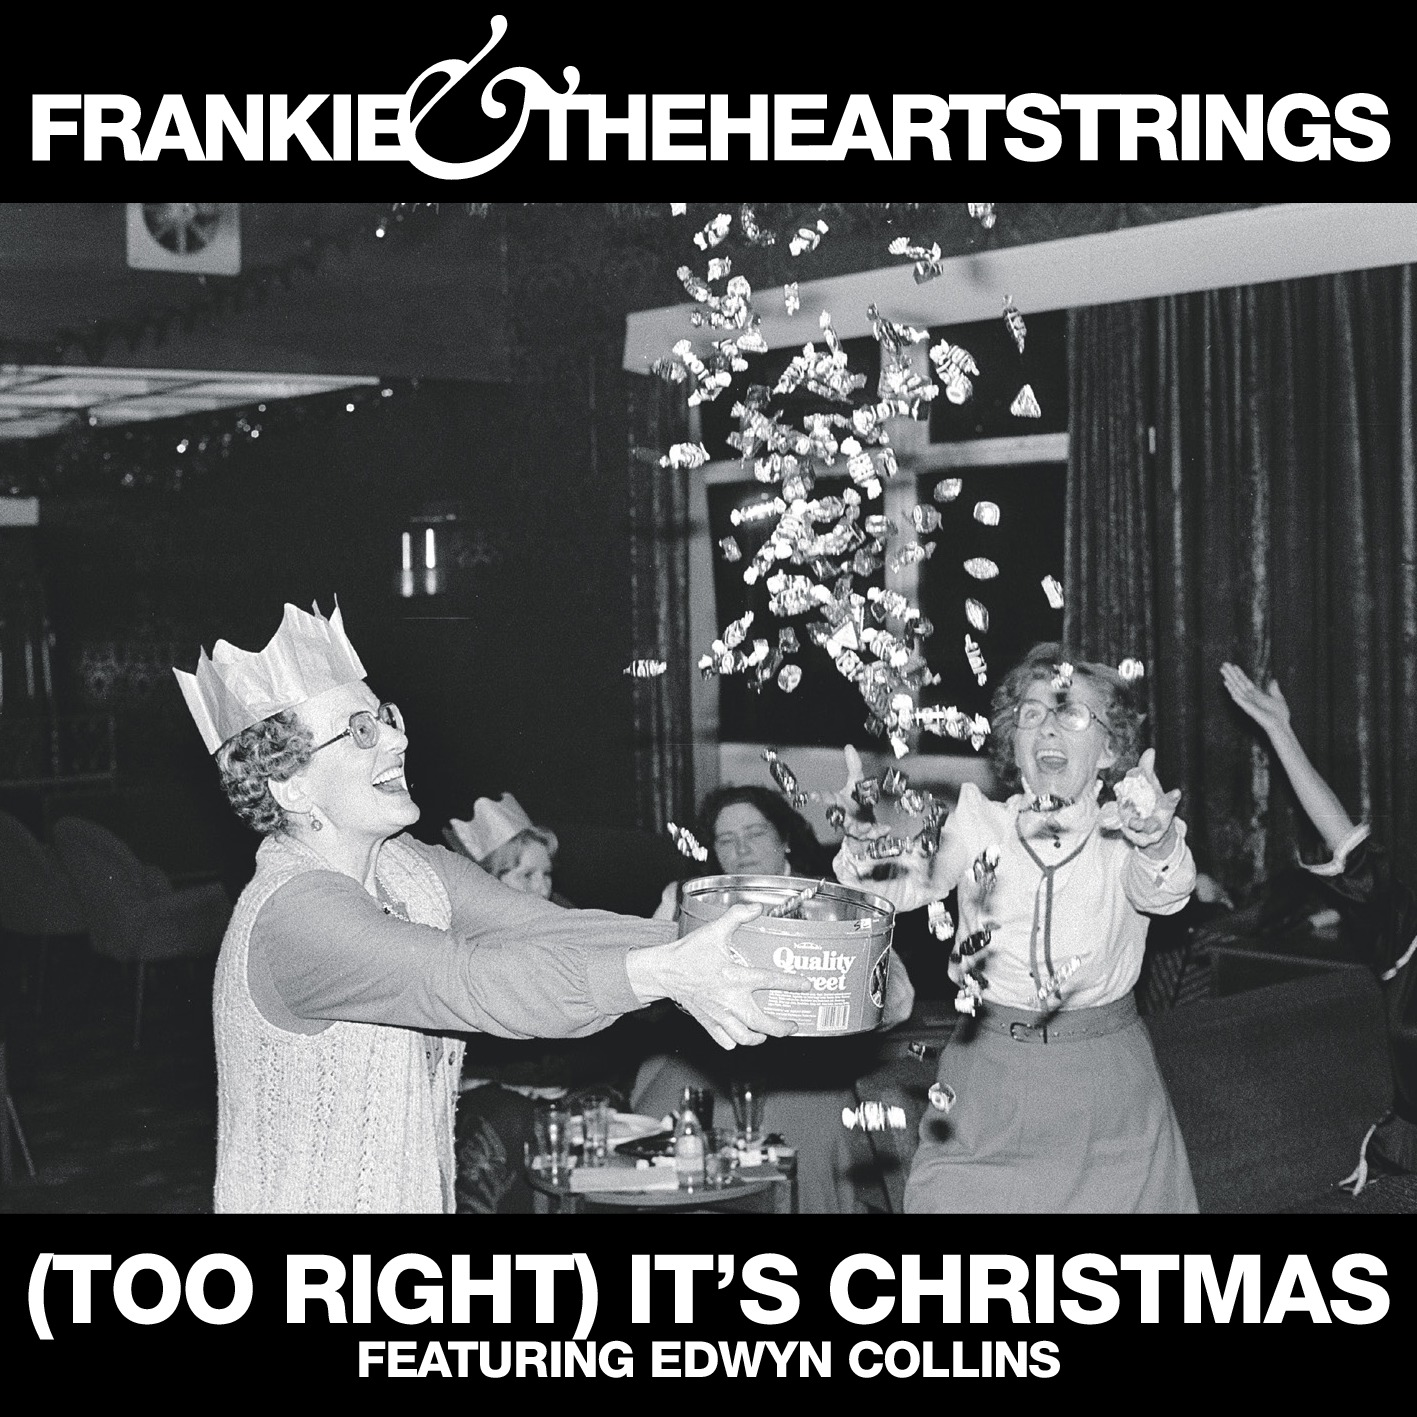 (Too Right) It's Christmas featuring Edwyn Collins - Frankie & The Heartstrings